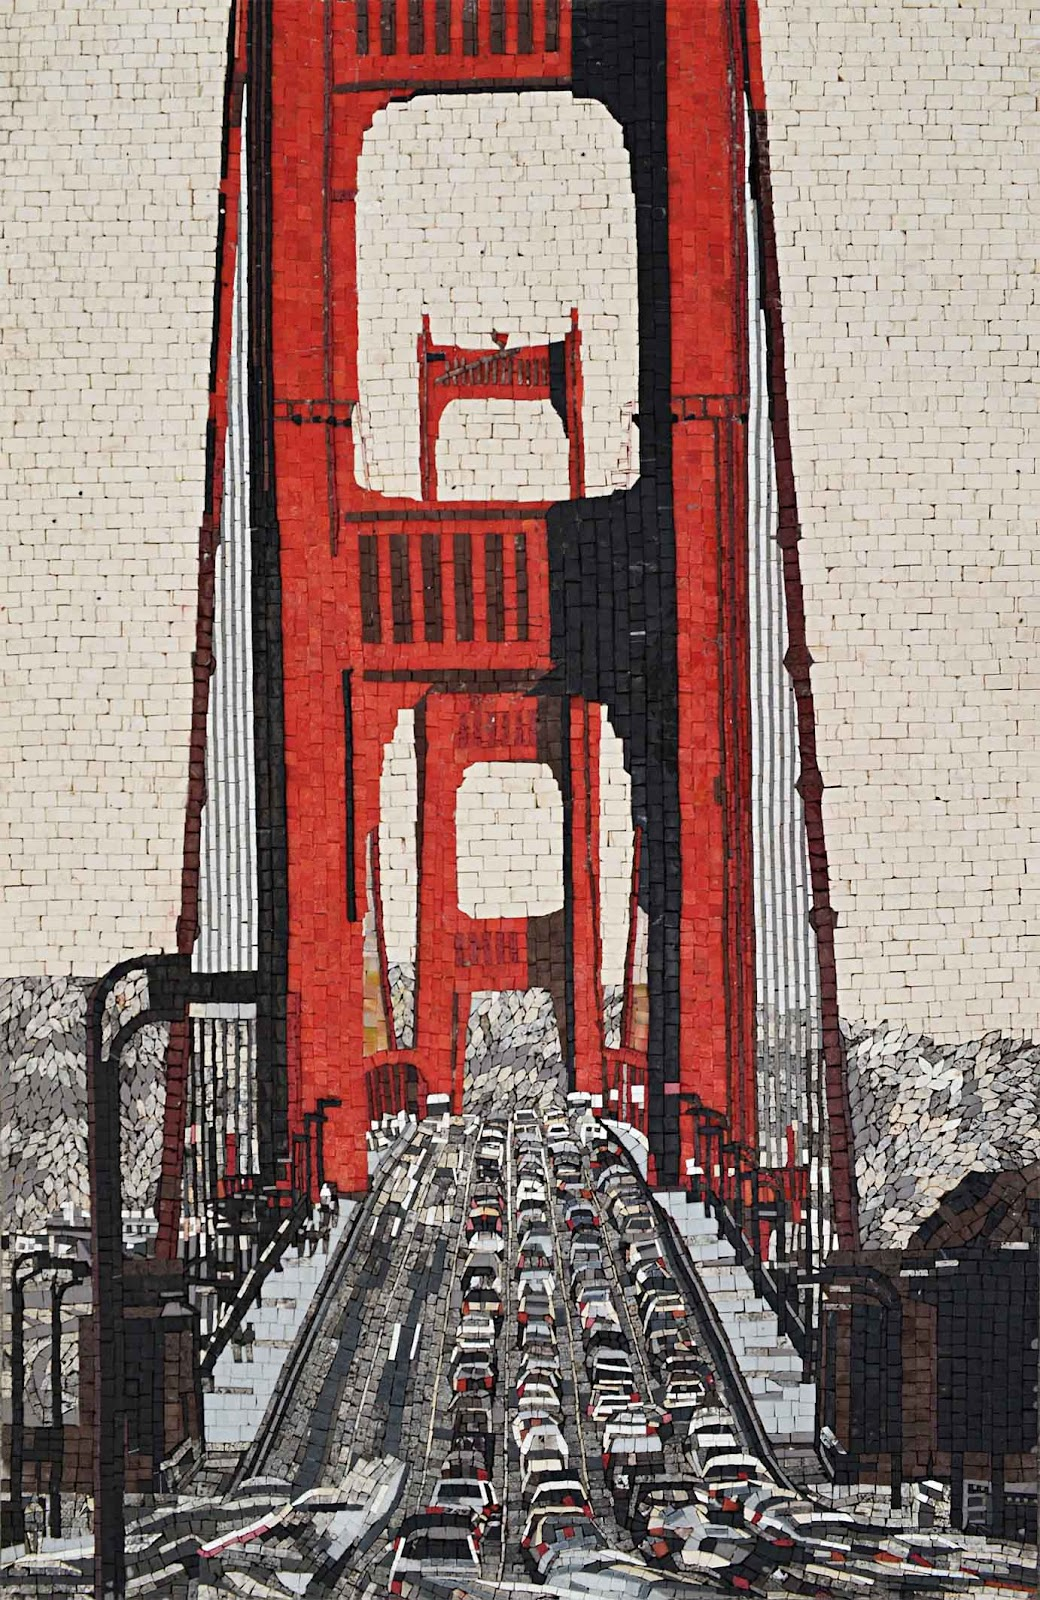 San Francisco Golden Gate Bridge Mosaic by Mozaico